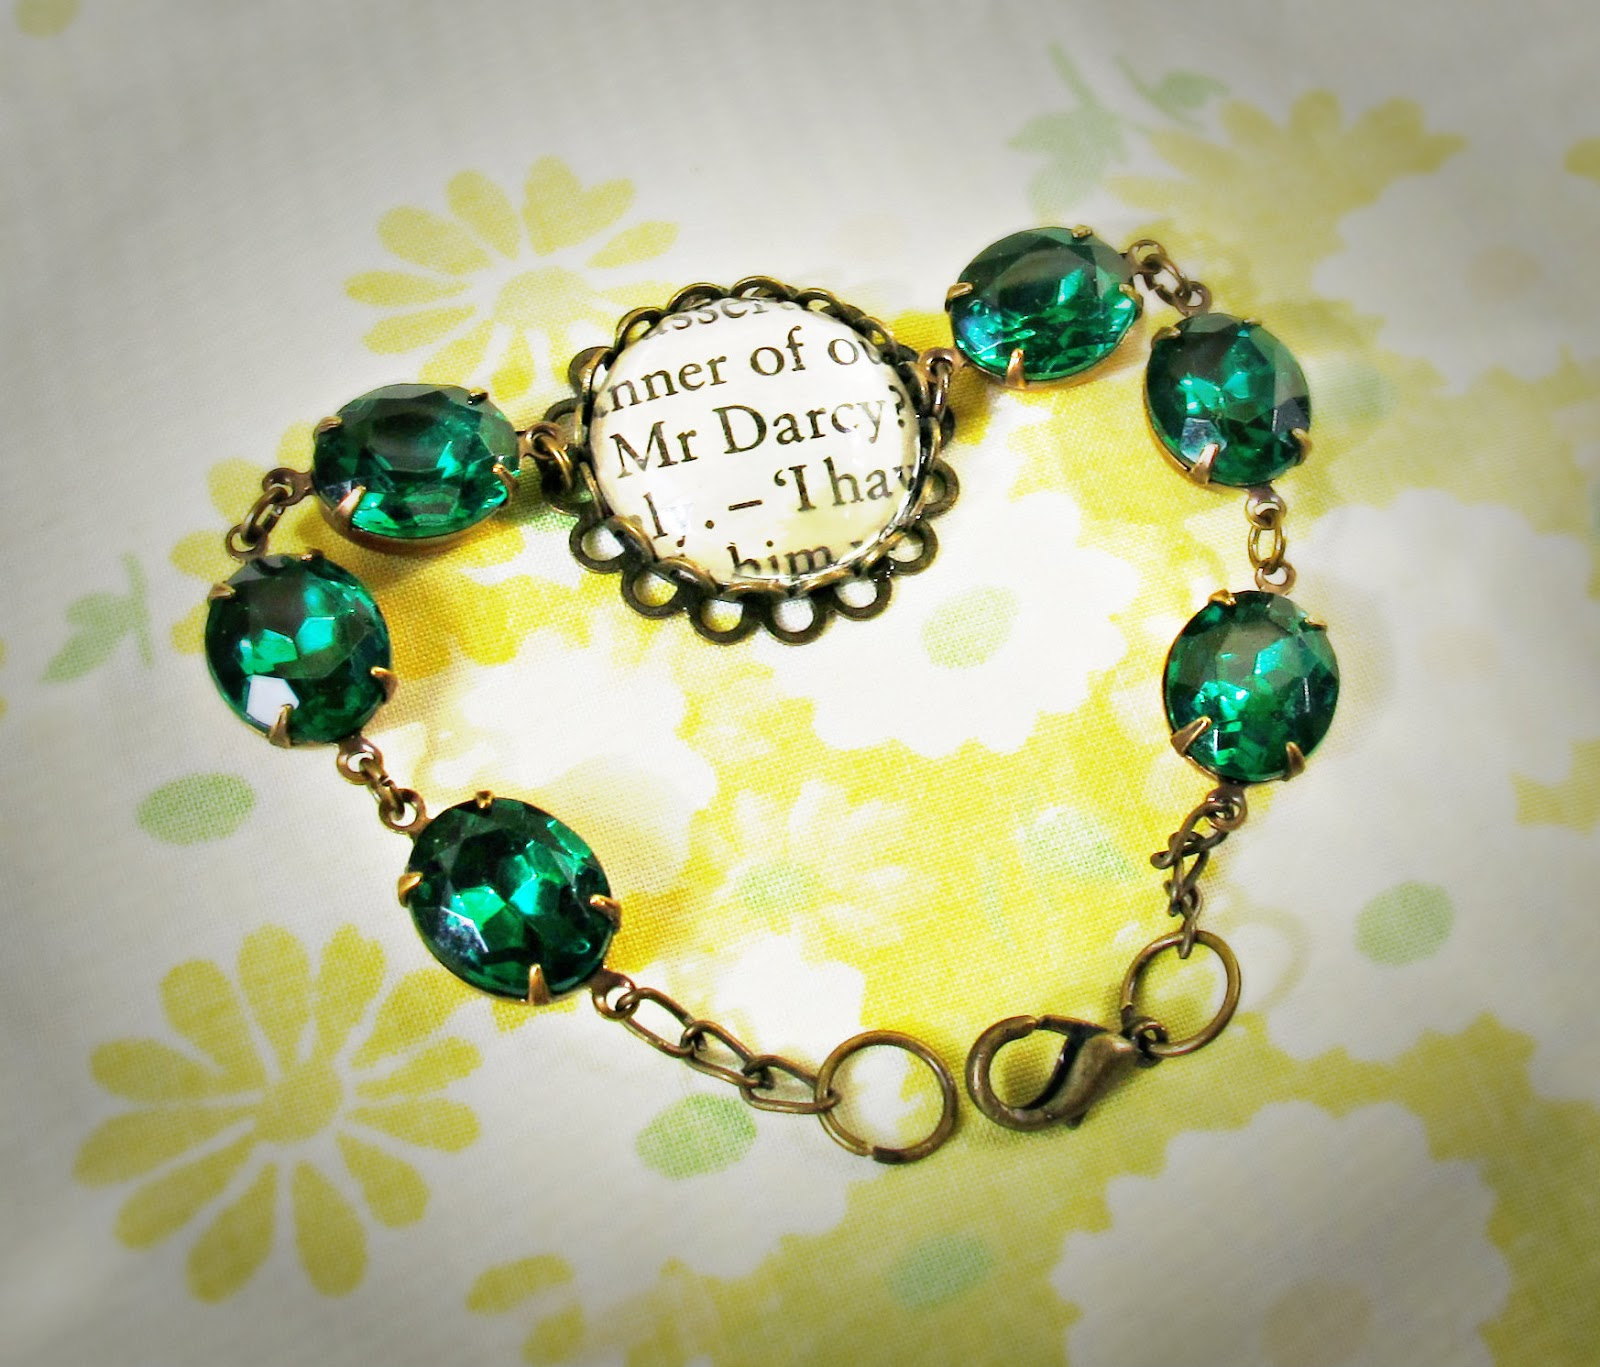 image mr darcy emerald bracelet vintage glass stone pride and prejudice jane austen upcycled book text pantone